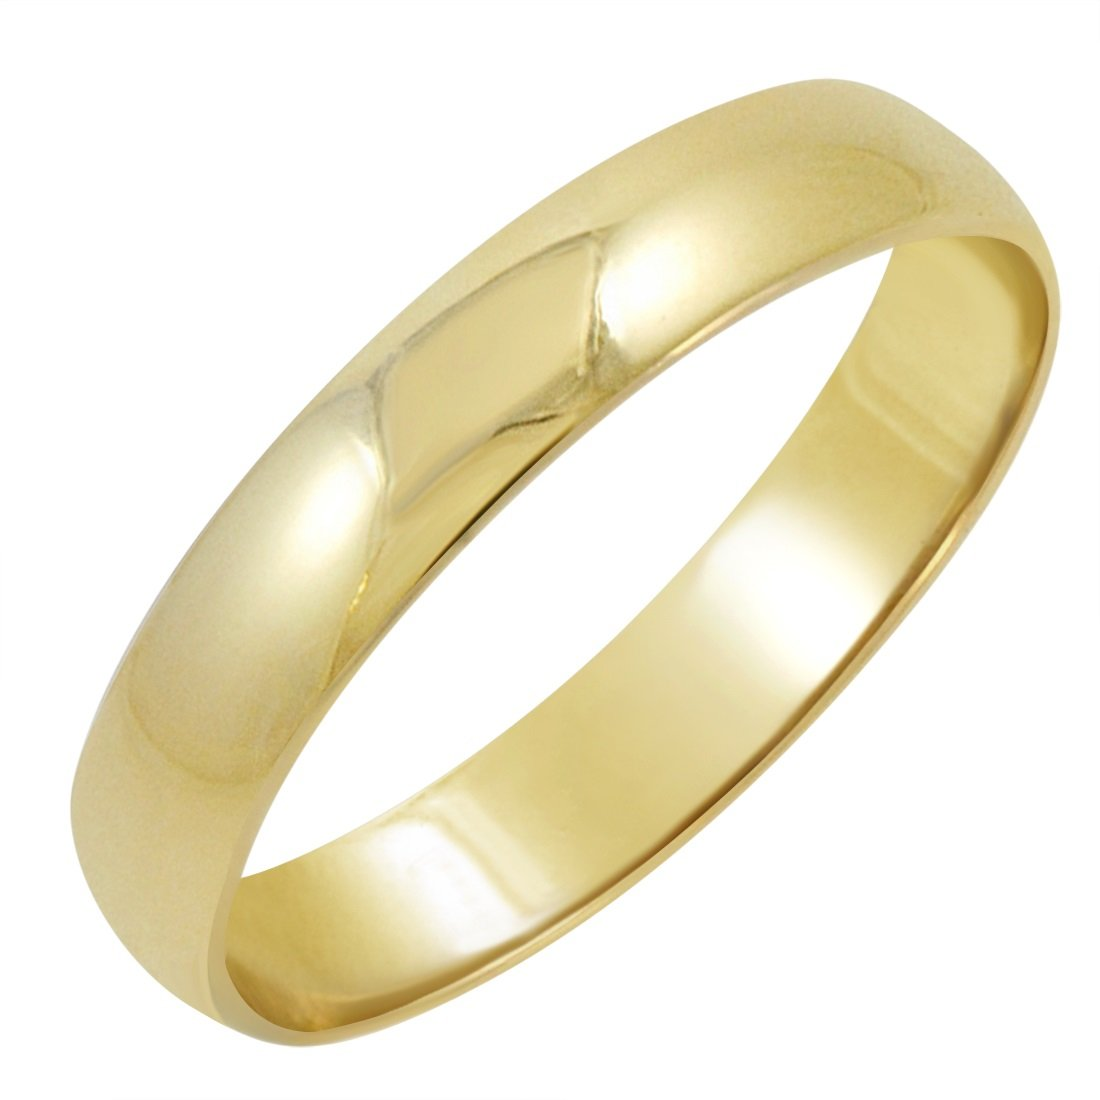 Men's 10K Yellow Gold 4mm Classic Fit Plain Wedding Band (Available Ring Sizes 7-12 1/2) Size 11